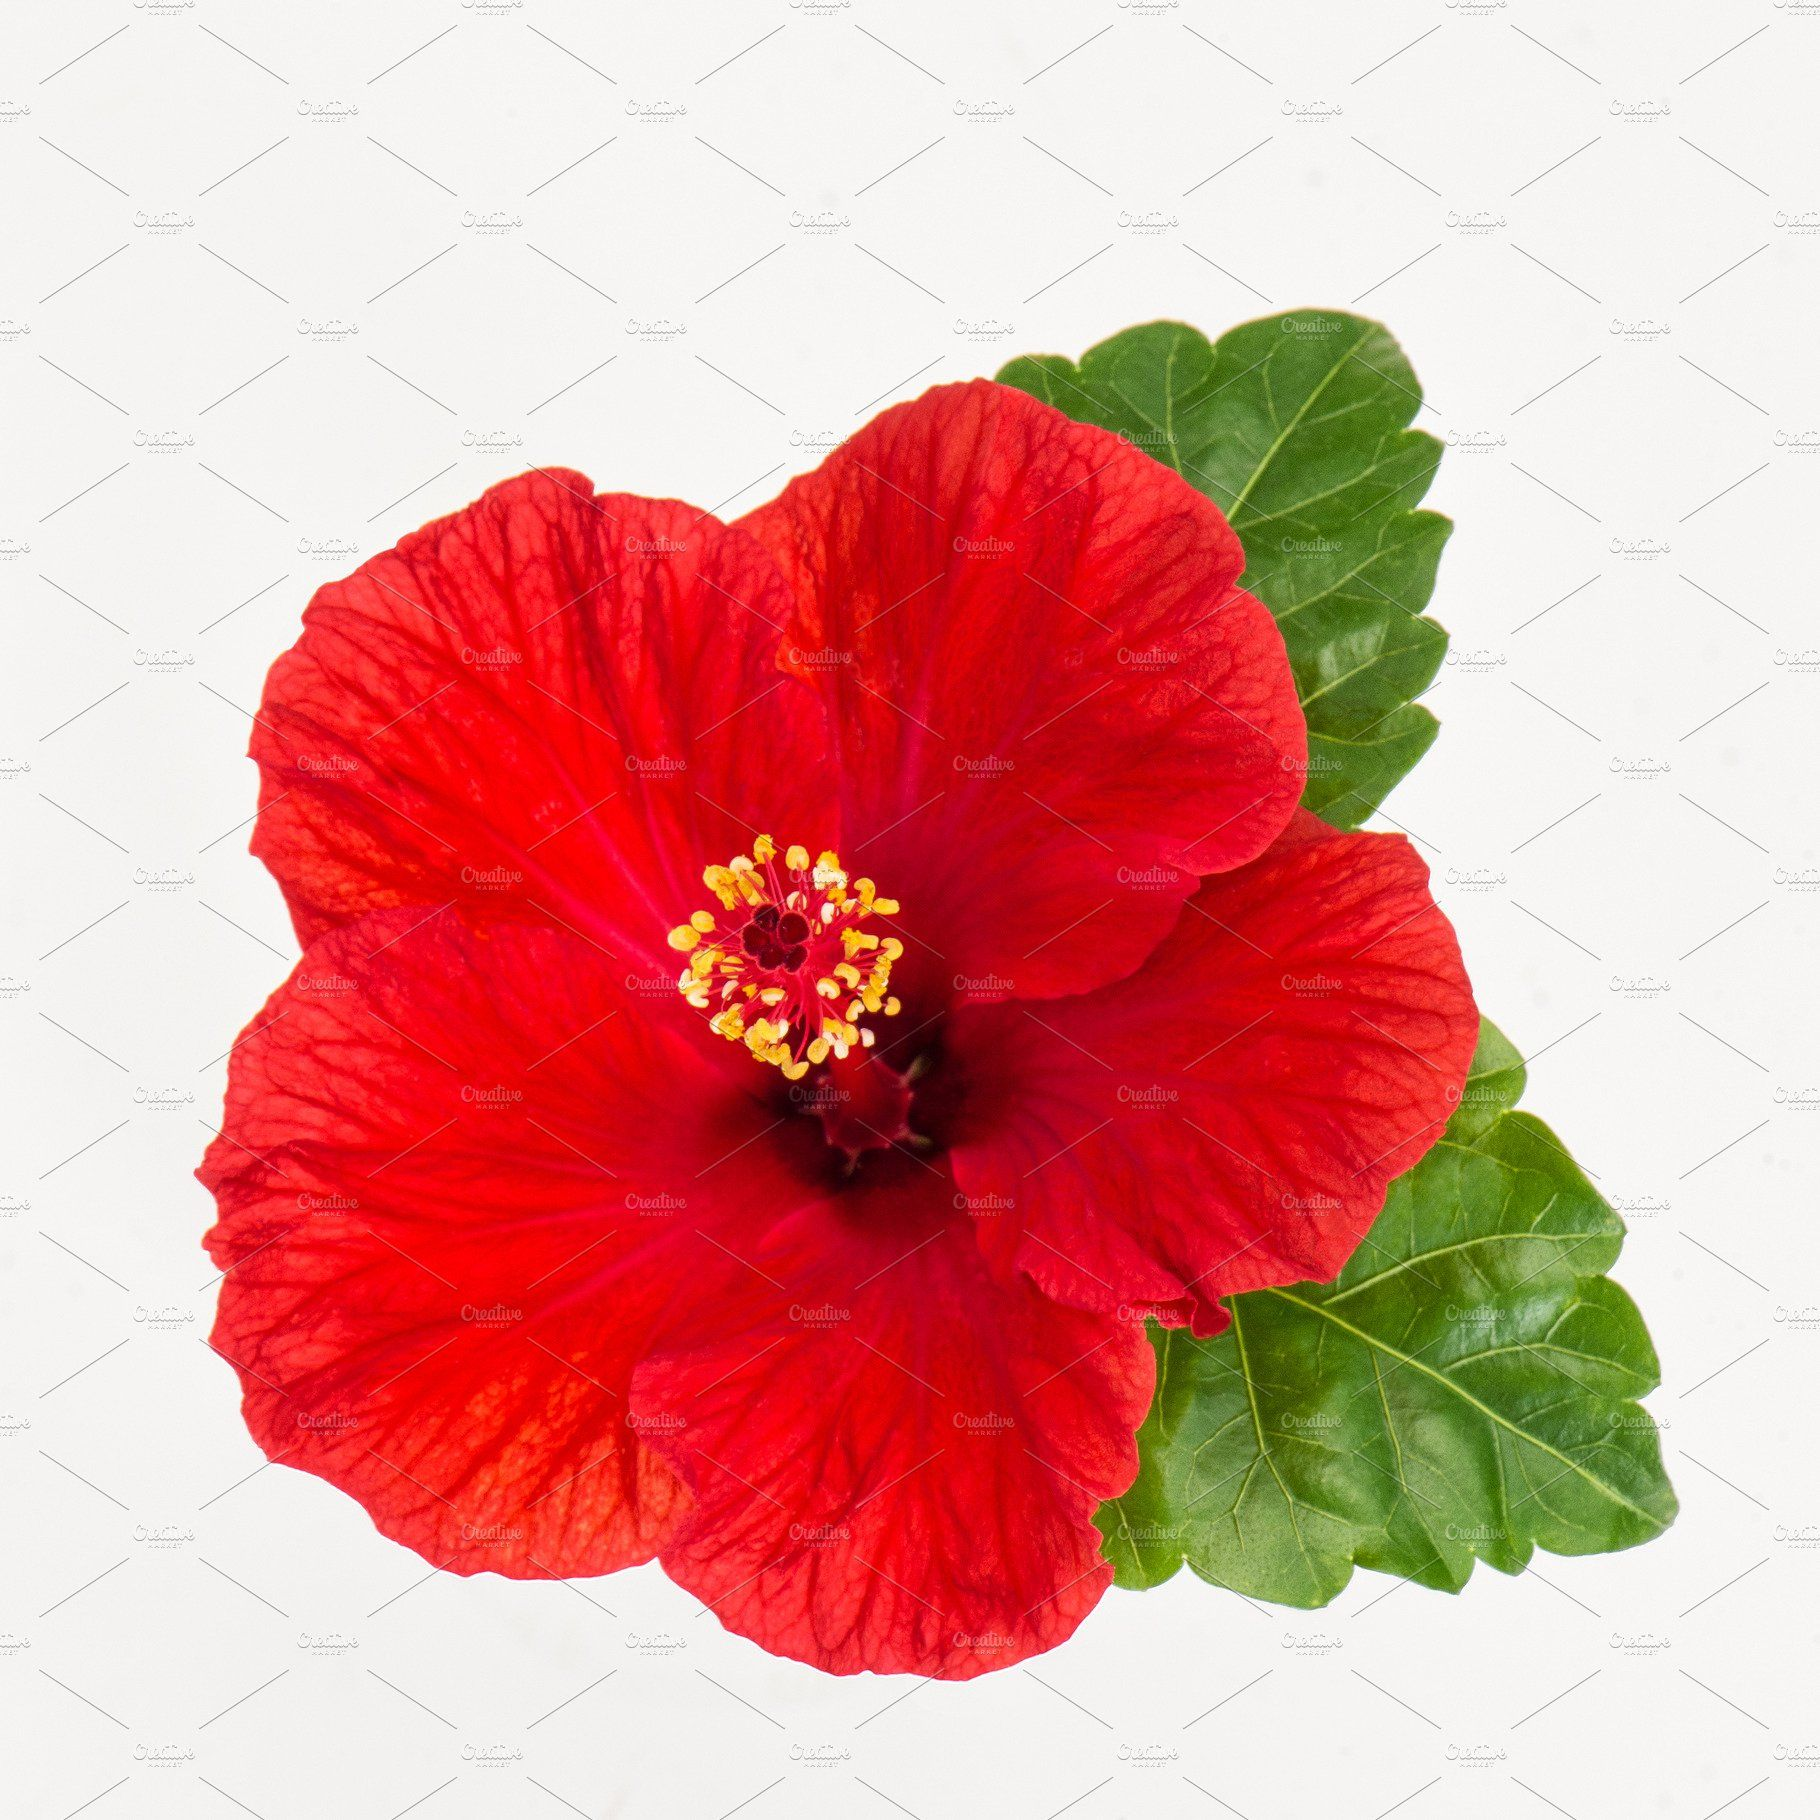 Hibiscus Flower Head Isolated White Flowers In 2020 Hibiscus Flowers White Hibiscus Red Blossoms